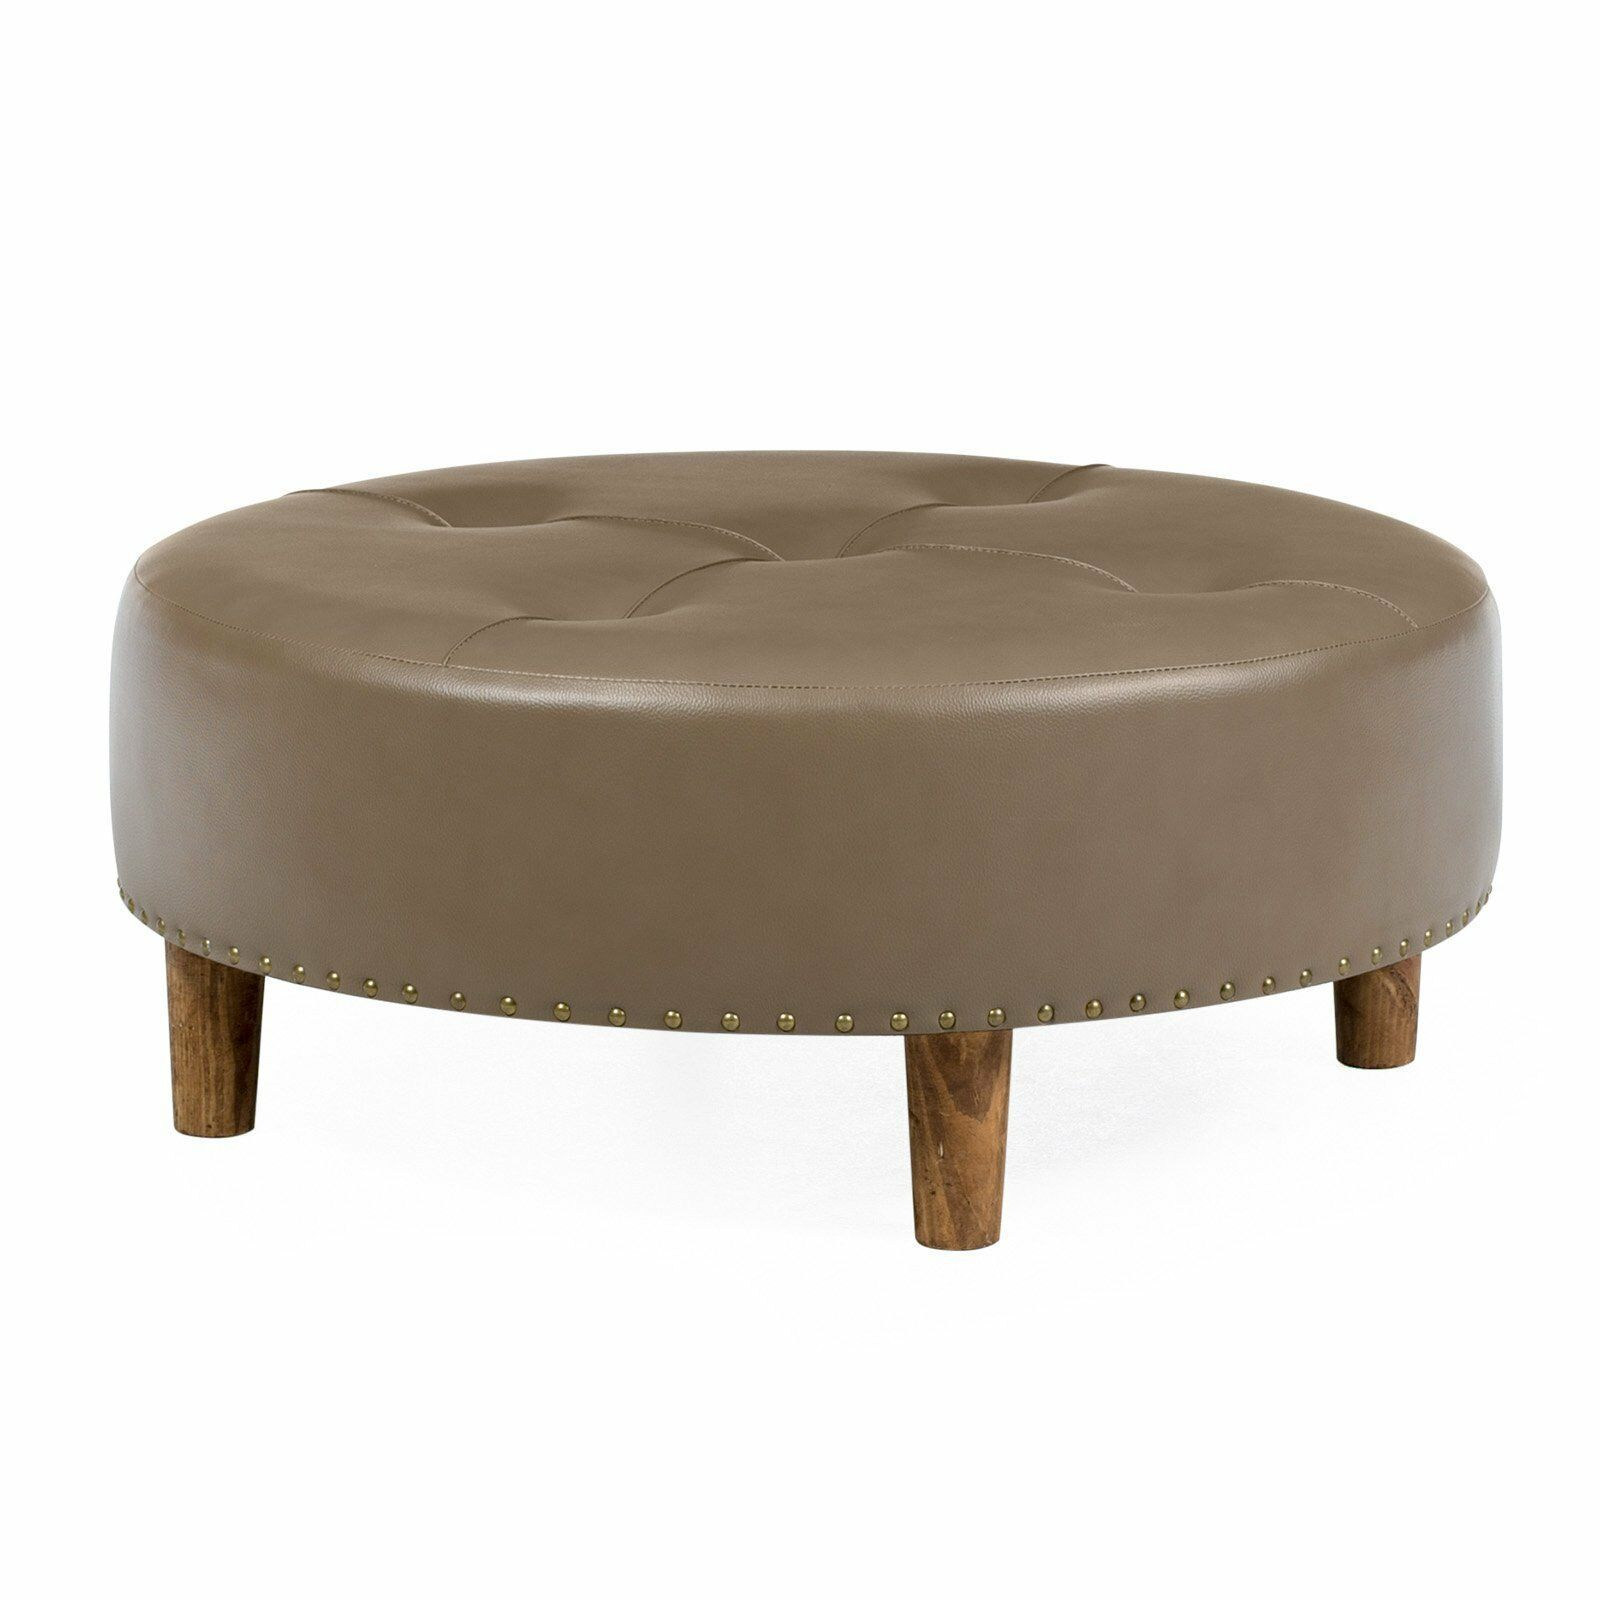 Brown Faux Leather Tufted 31 Quot Round Cocktail Ottoman Foot